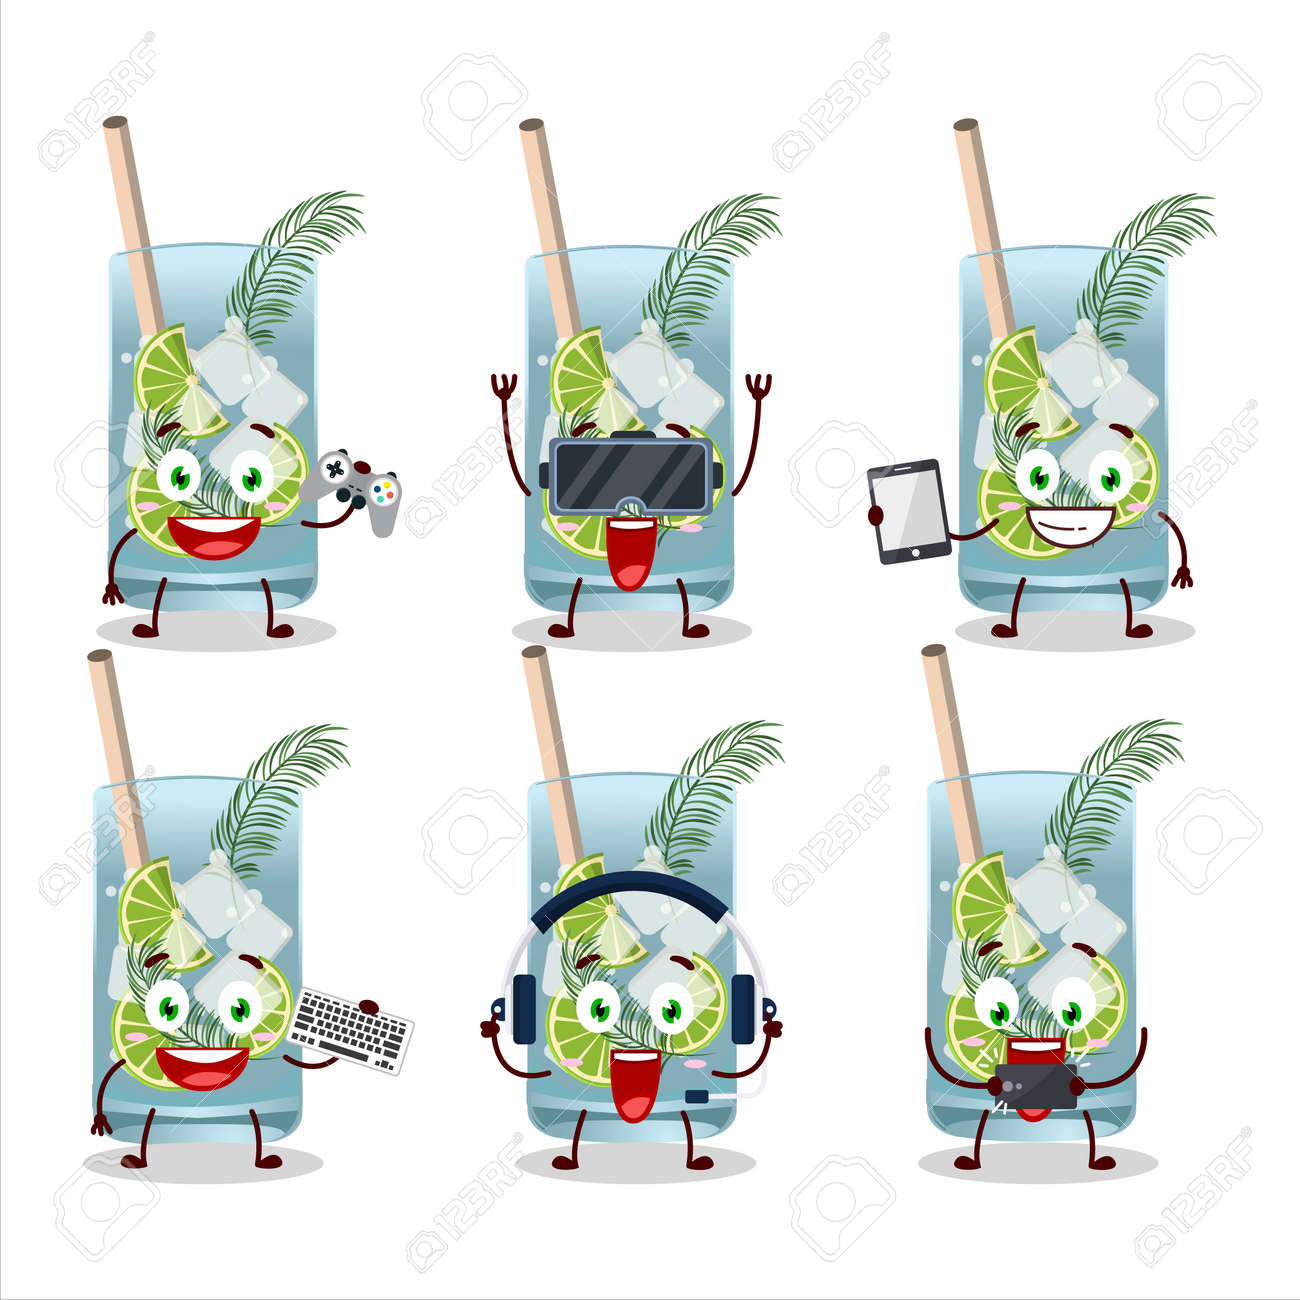 Gin tonic cartoon character are playing games with various cute emoticons - 173228604